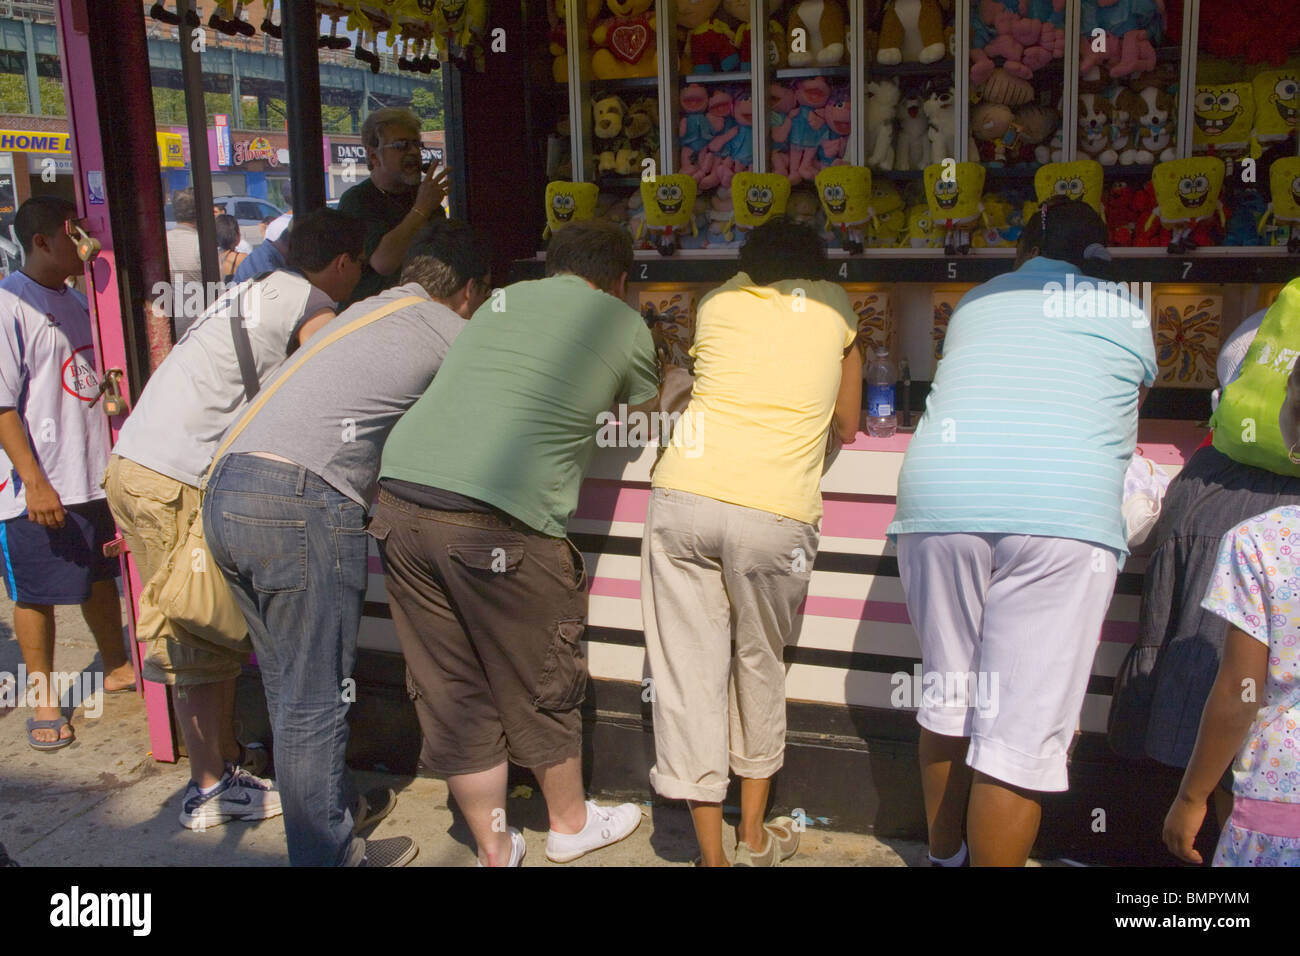 Adults playing a game to win a stuffed animal, Coney Island, Brooklyn, NY. - Stock Image